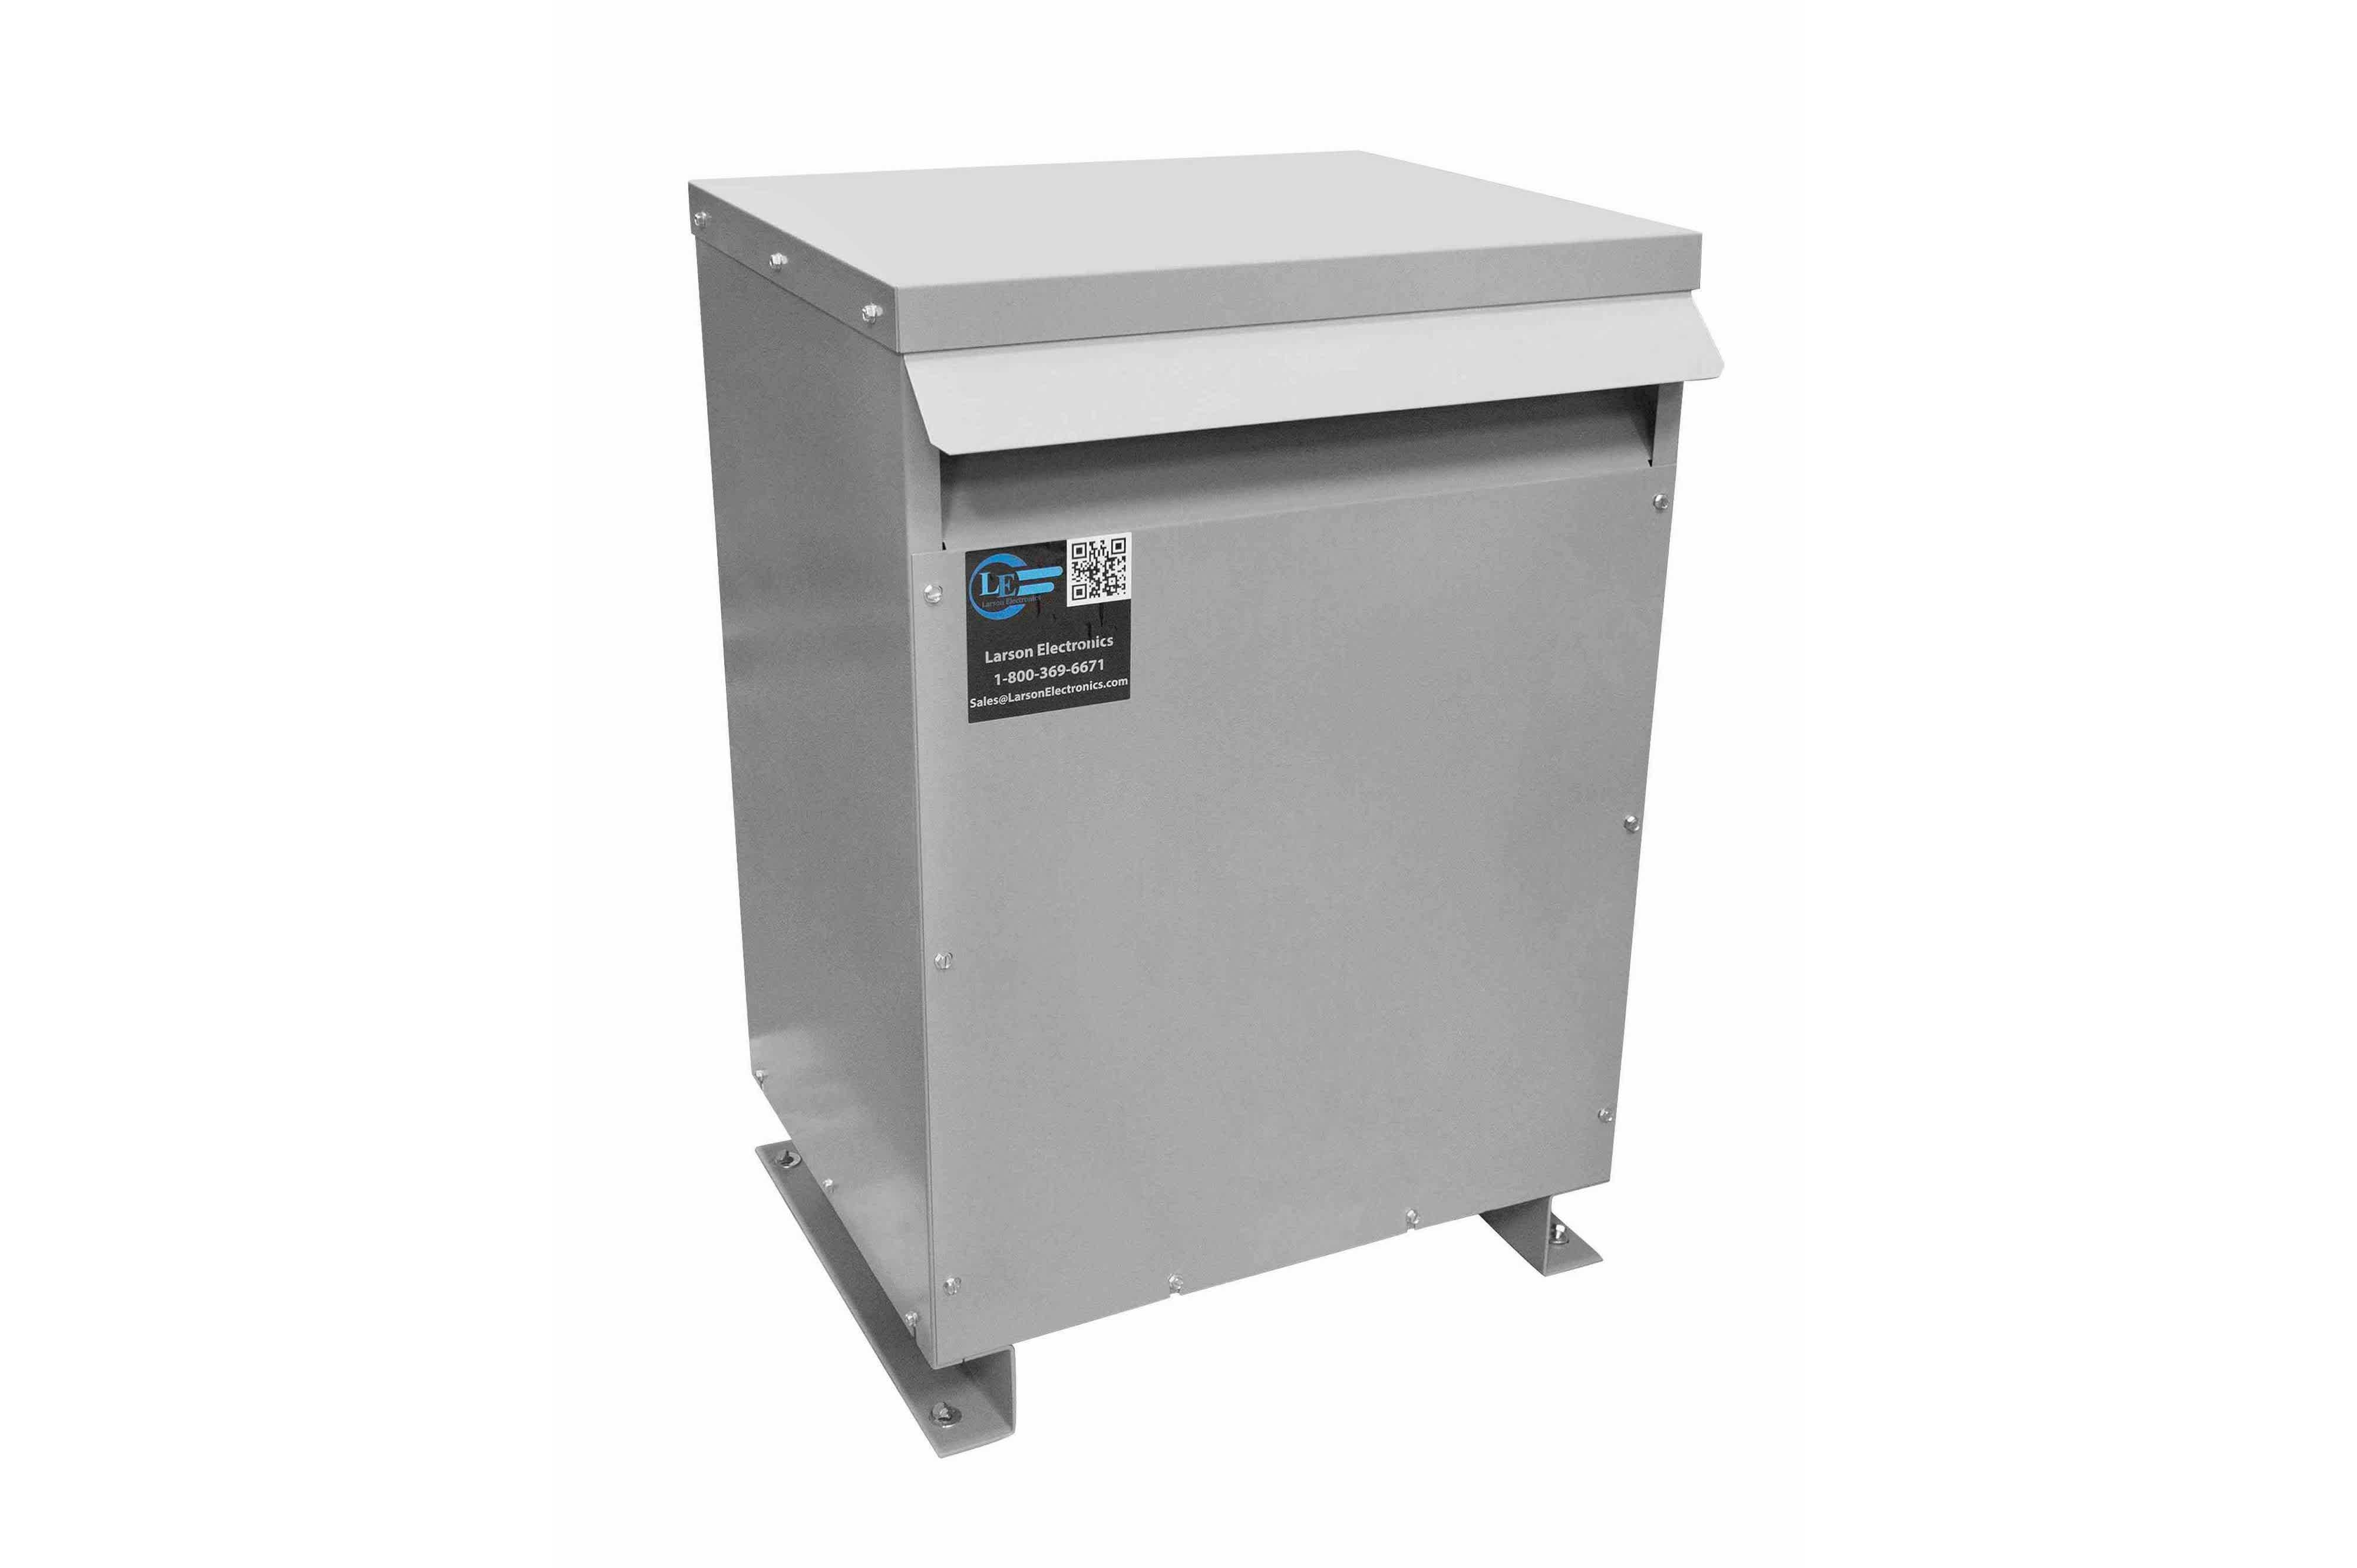 45 kVA 3PH Isolation Transformer, 220V Delta Primary, 480V Delta Secondary, N3R, Ventilated, 60 Hz